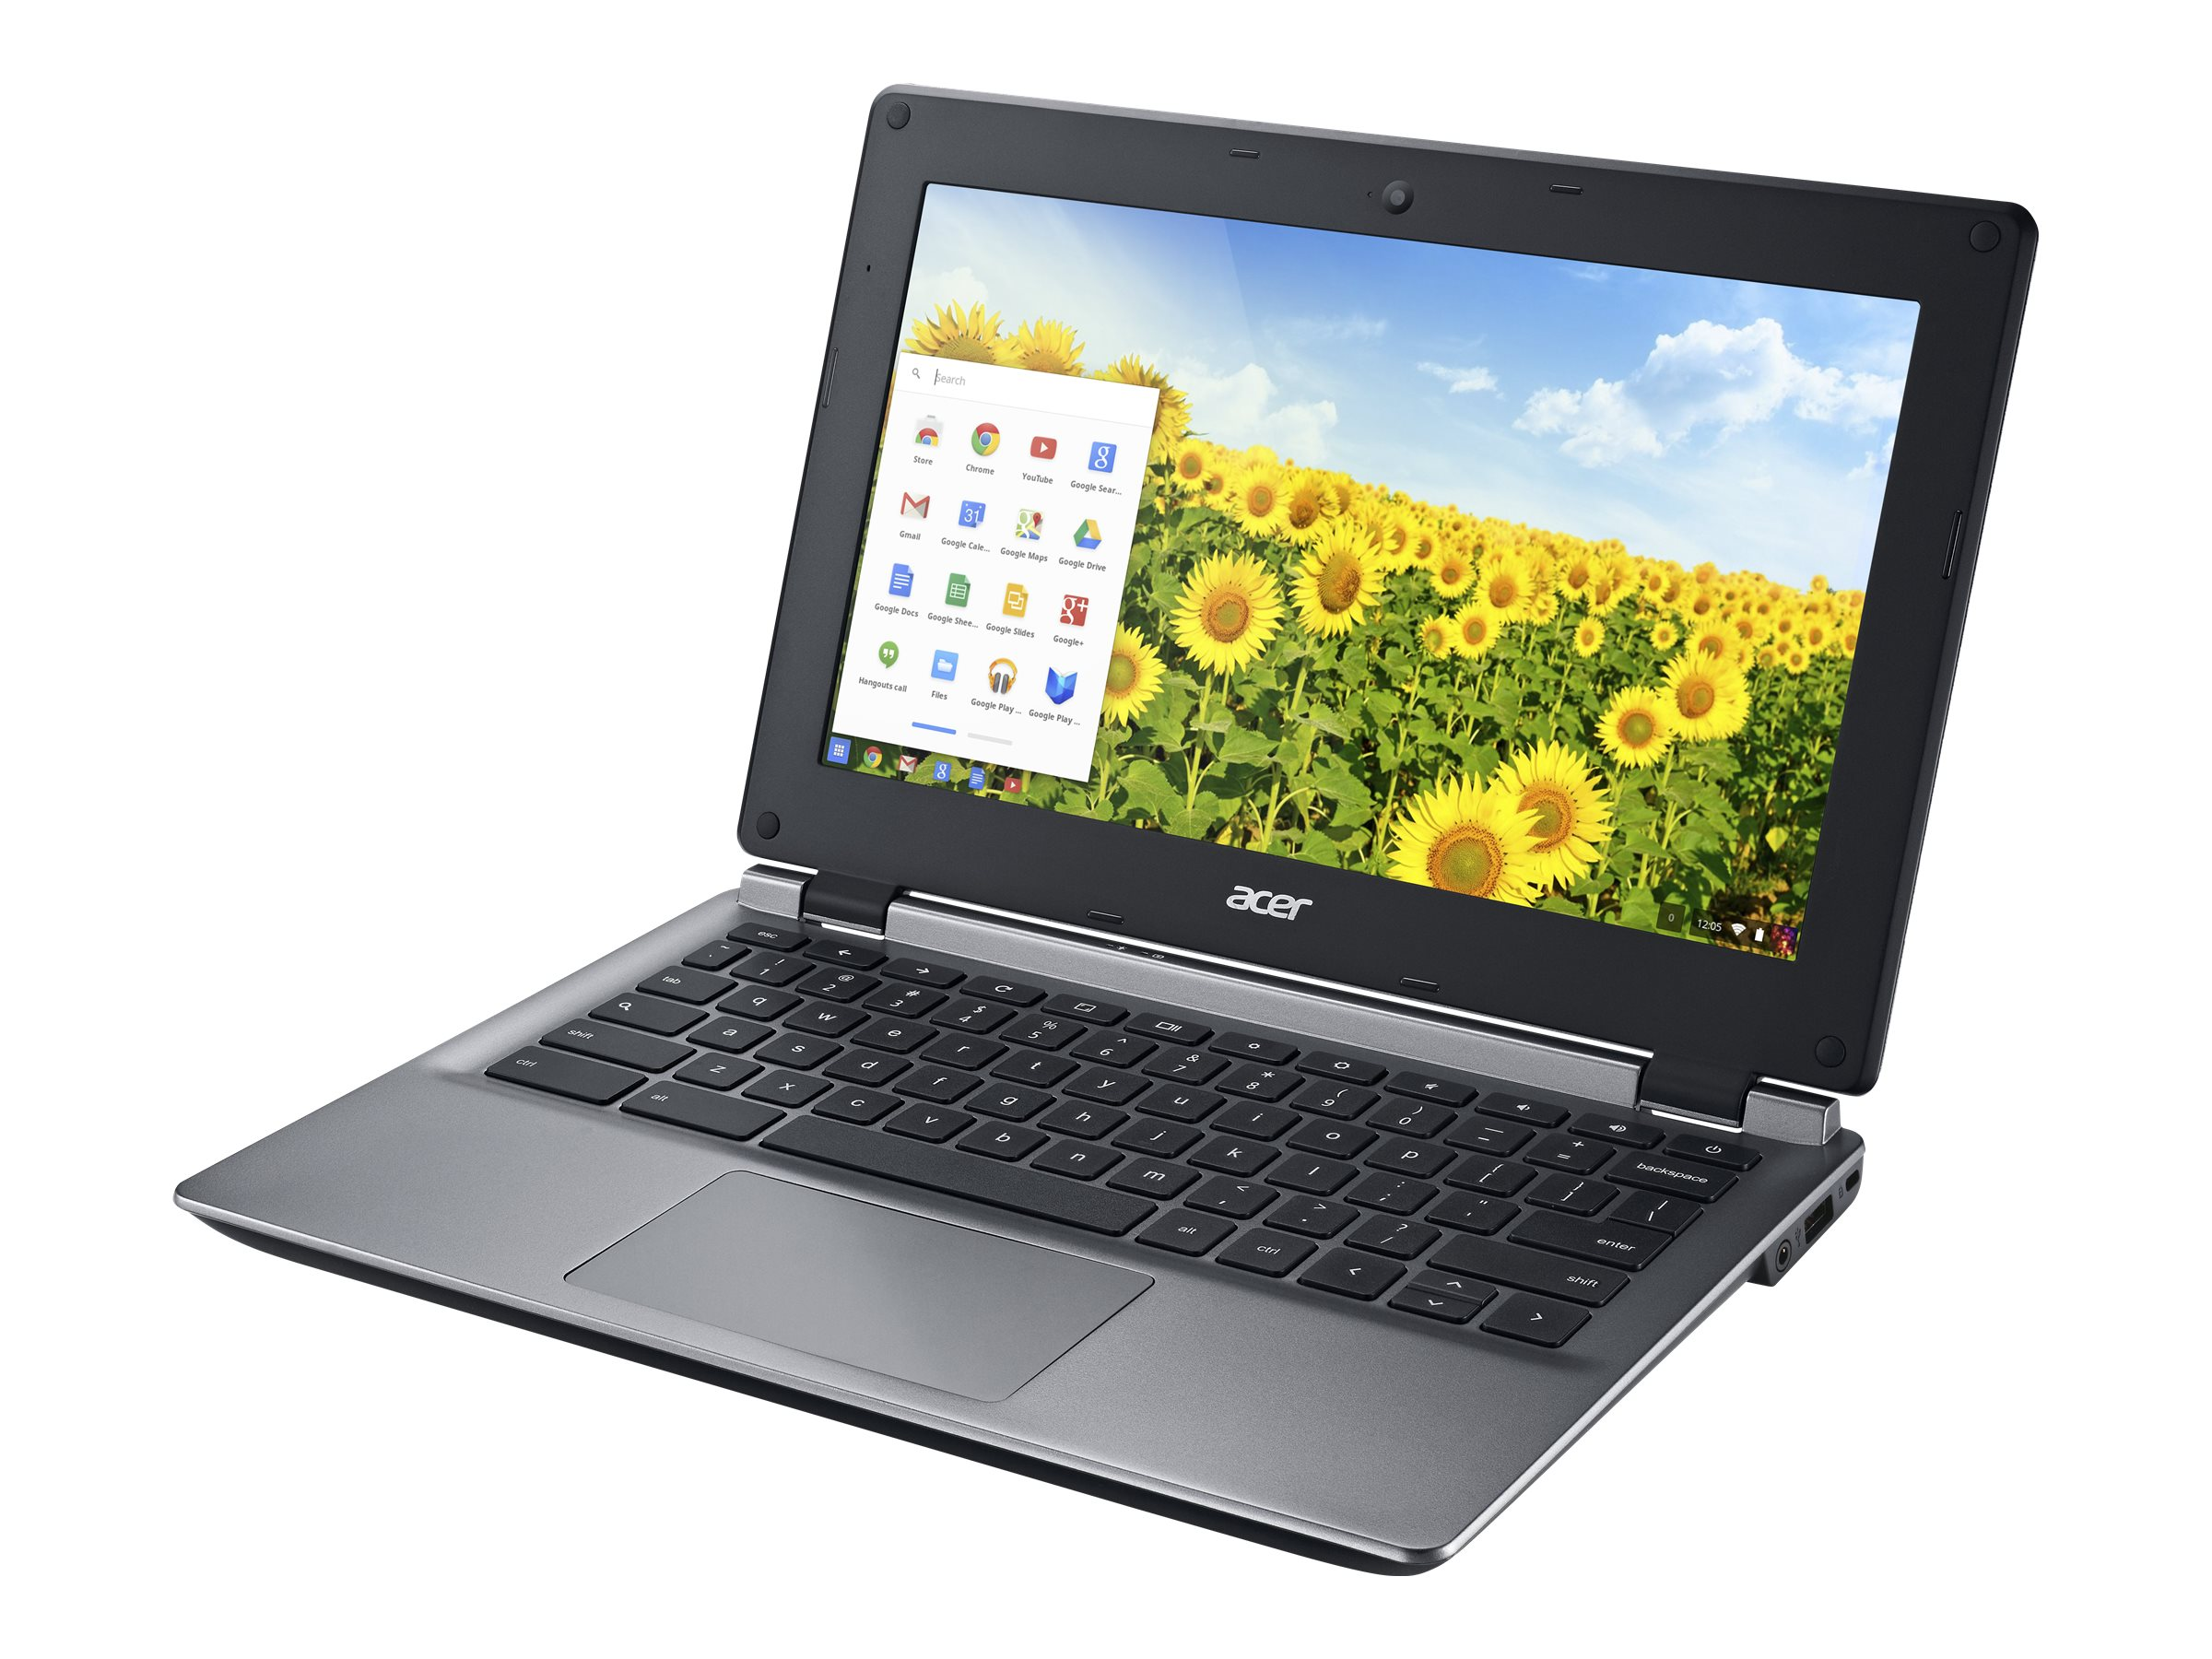 Acer Chromebook 11 C730E-C4BA 2.16GHz Celeron 11.6in display, NX.GC1AA.001, 30877621, Notebooks